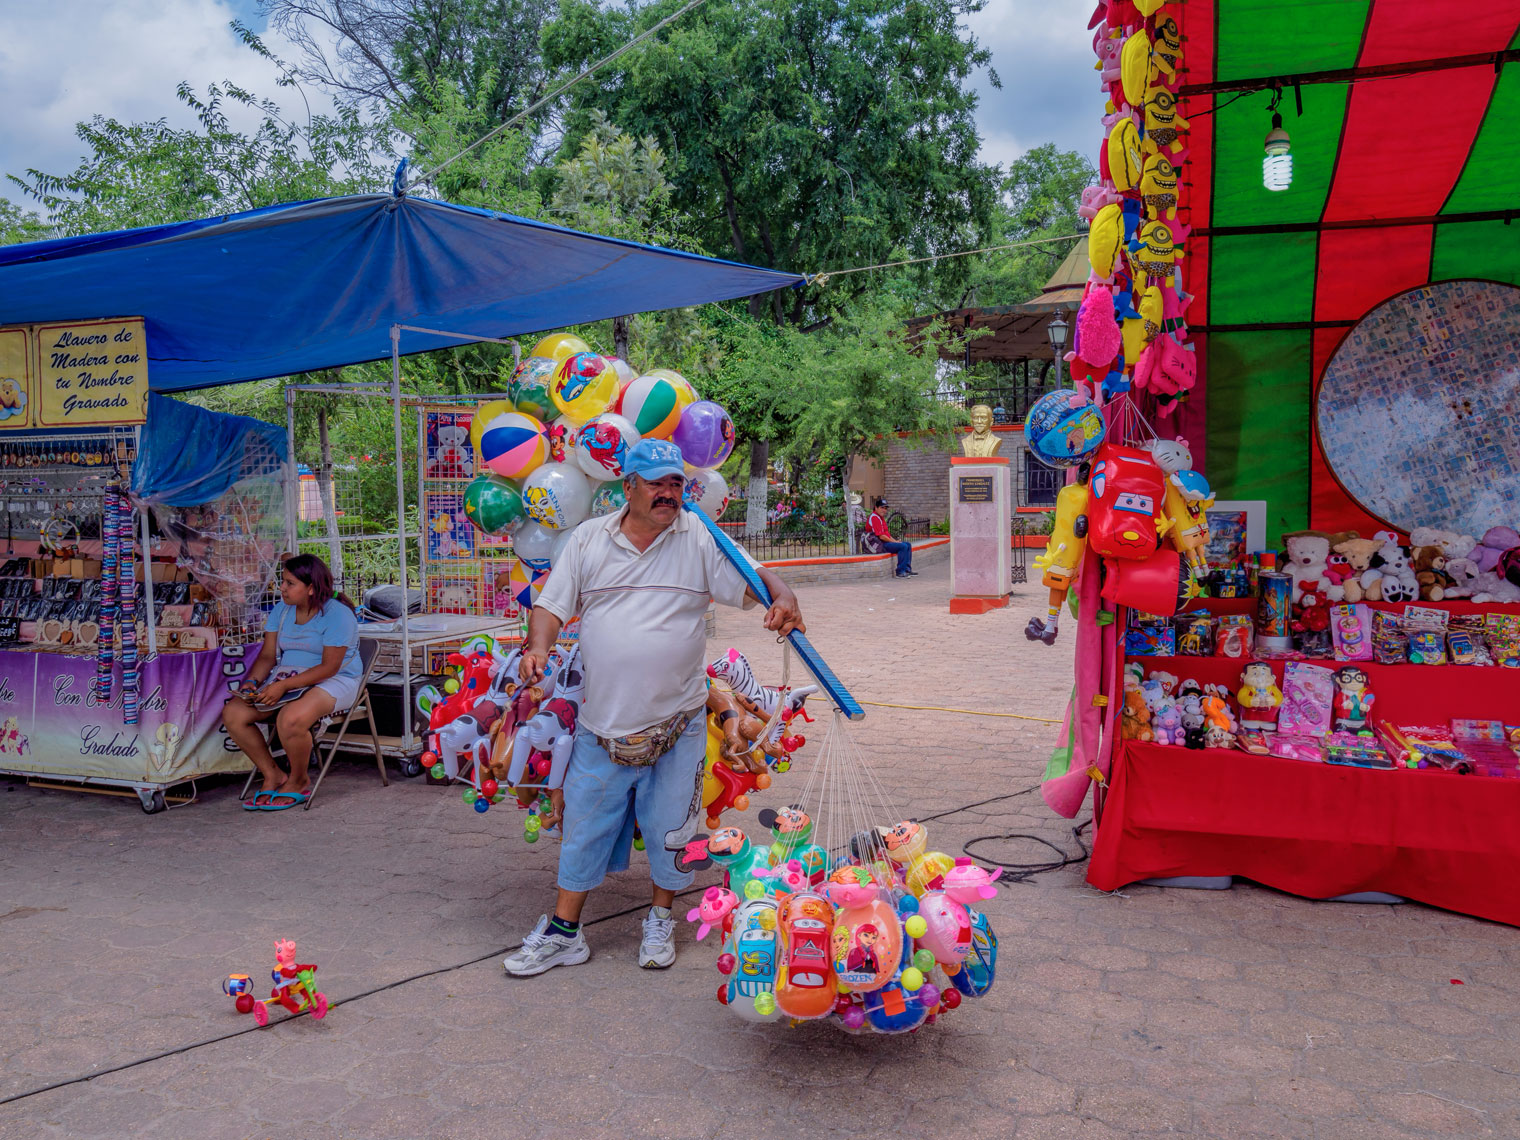 34-Acuna-Balloon-Vendor